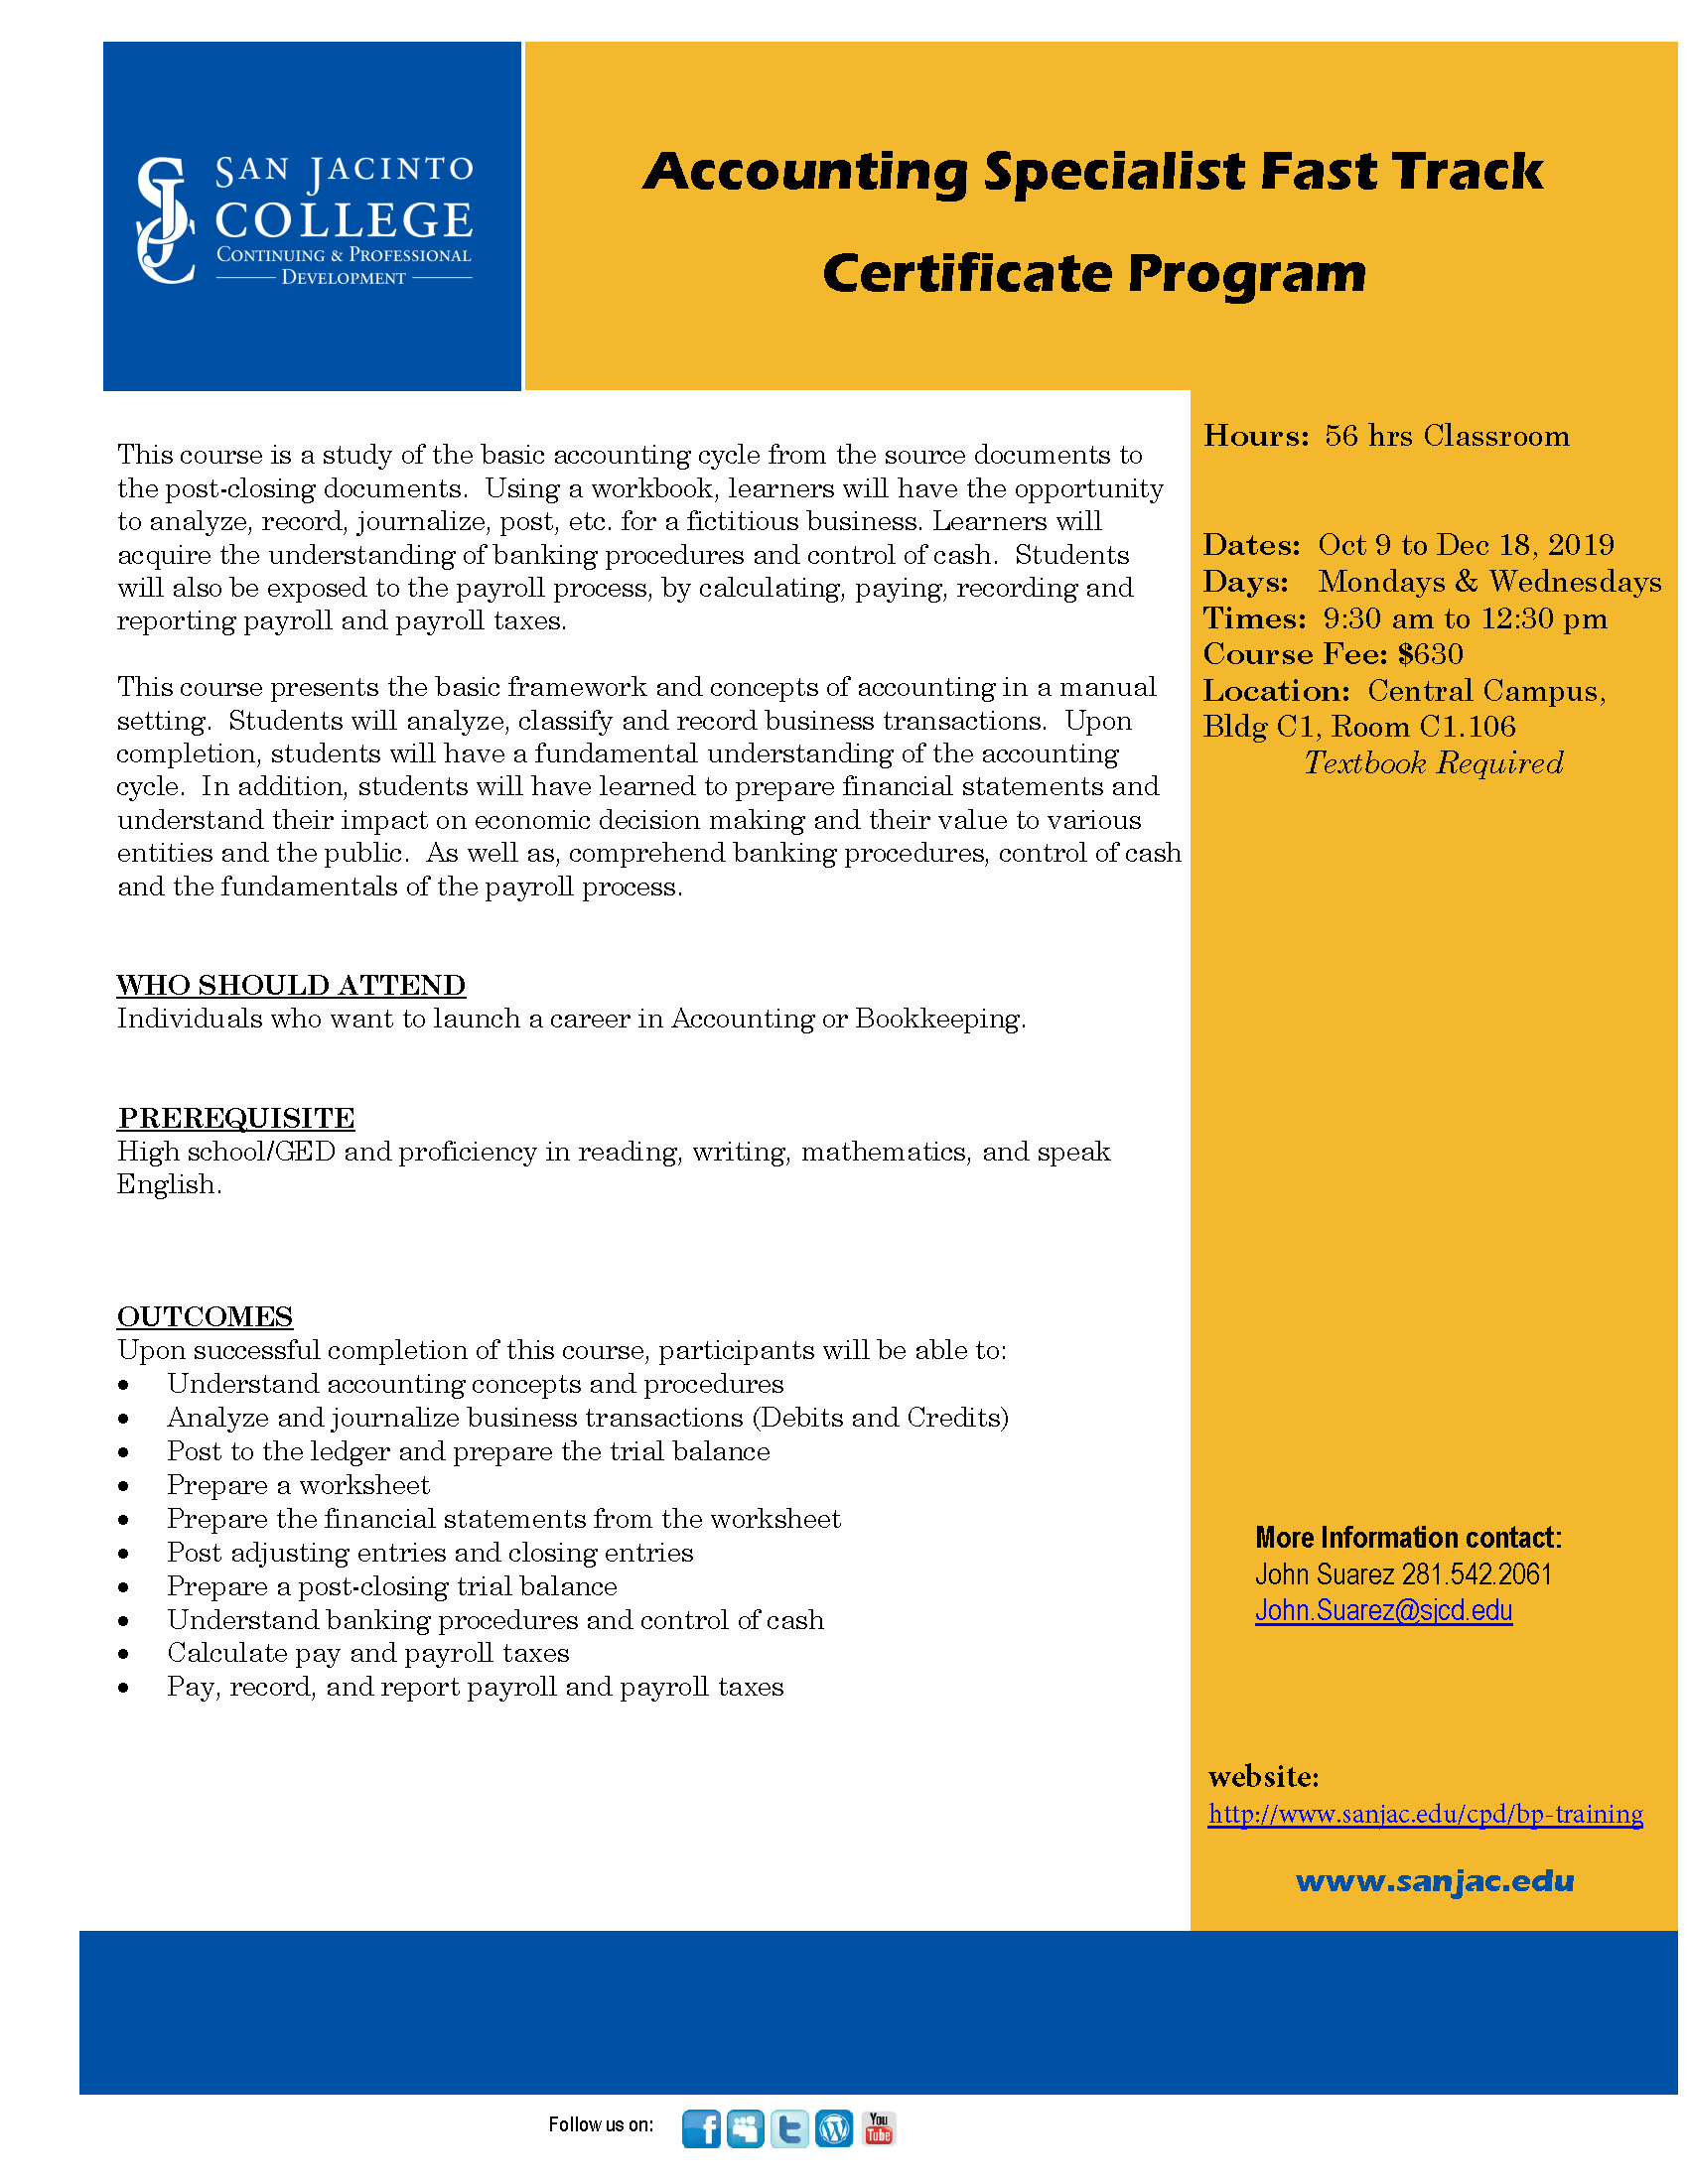 Accounting Specialist Fast Track Certificate Program San